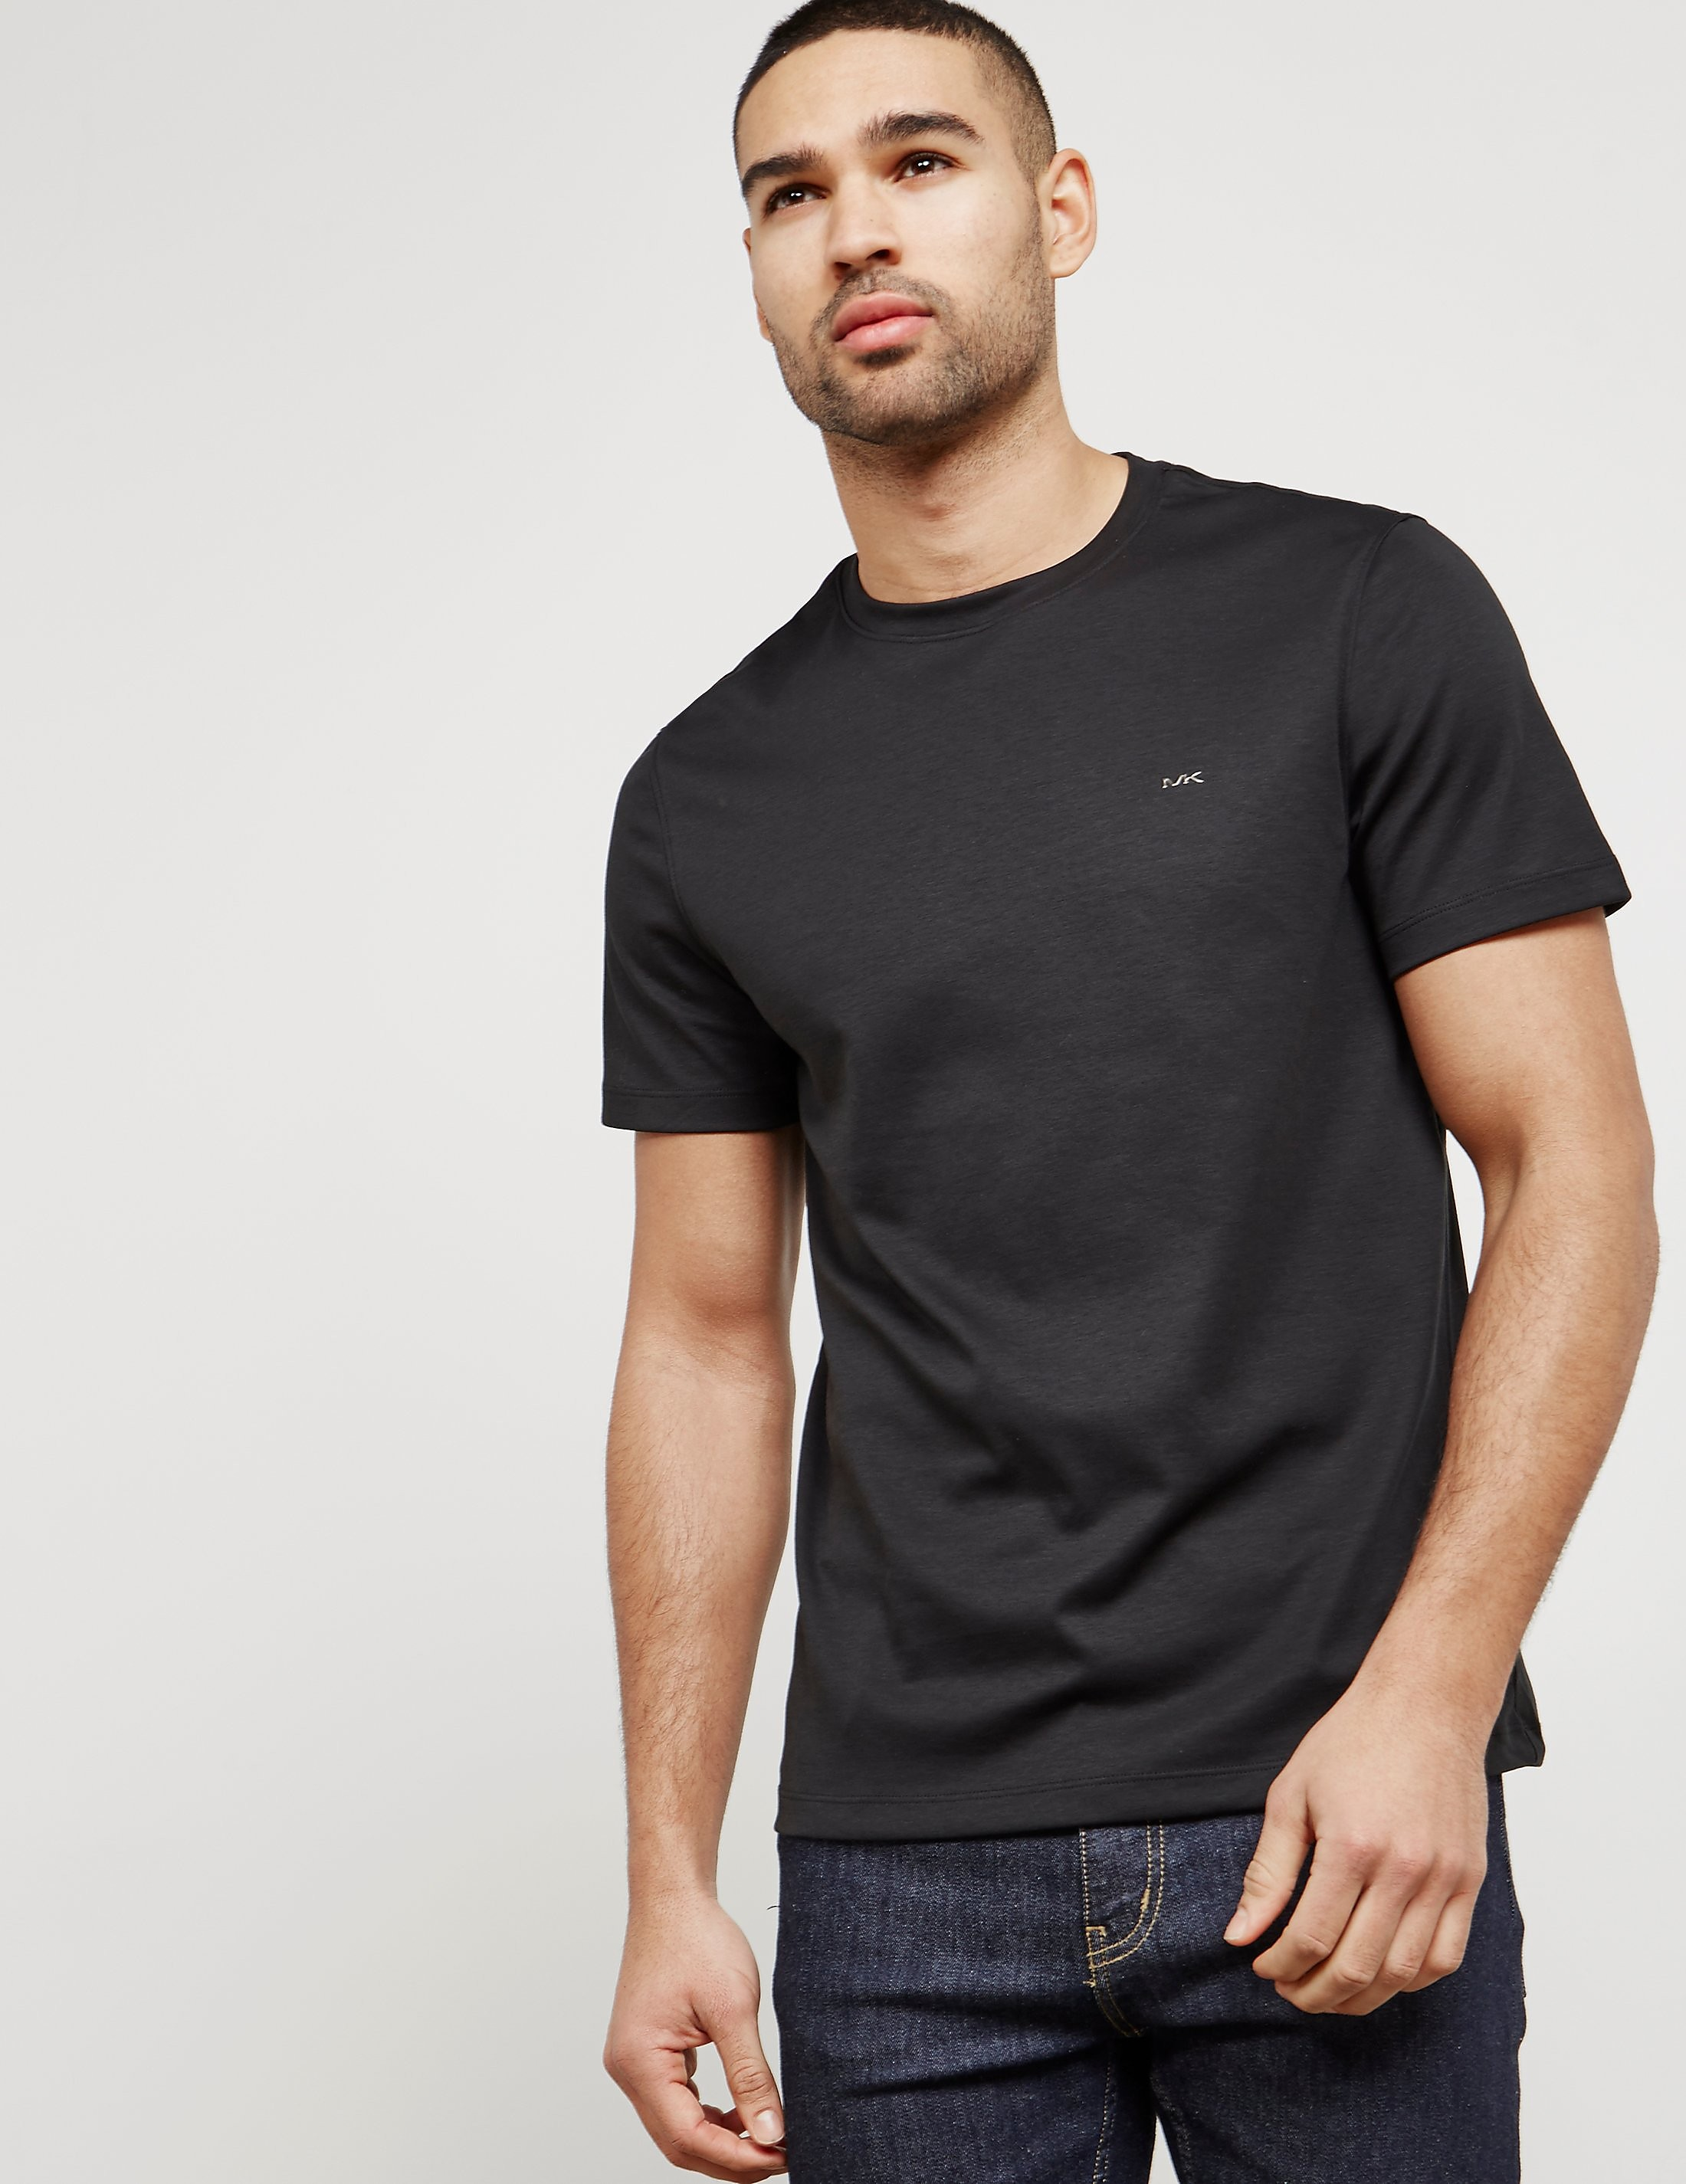 Michael Kors T-Shirt Sleek Cotton